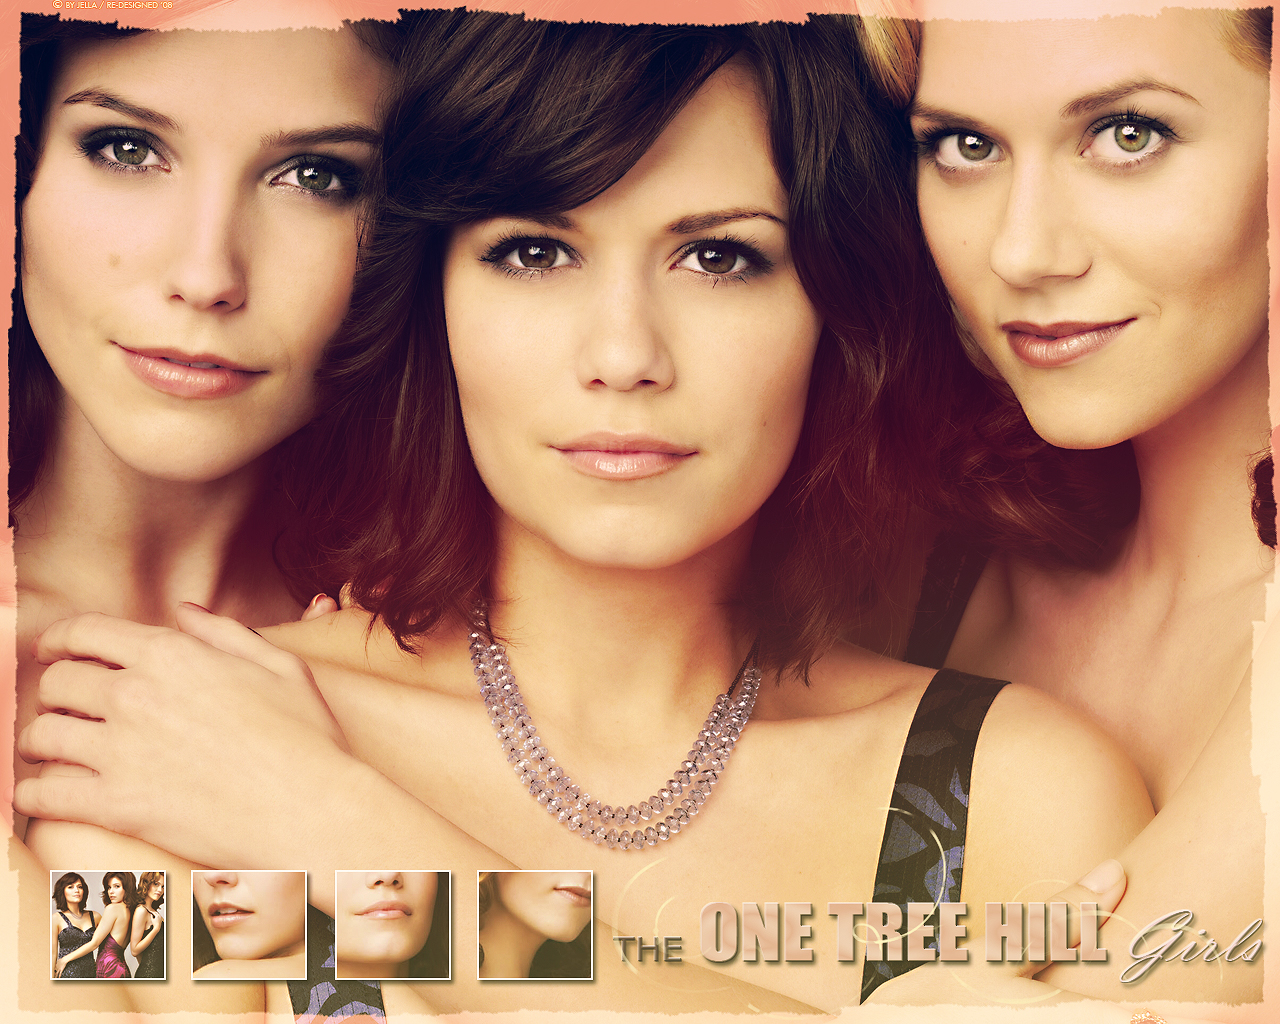 One tree hill fashion 24